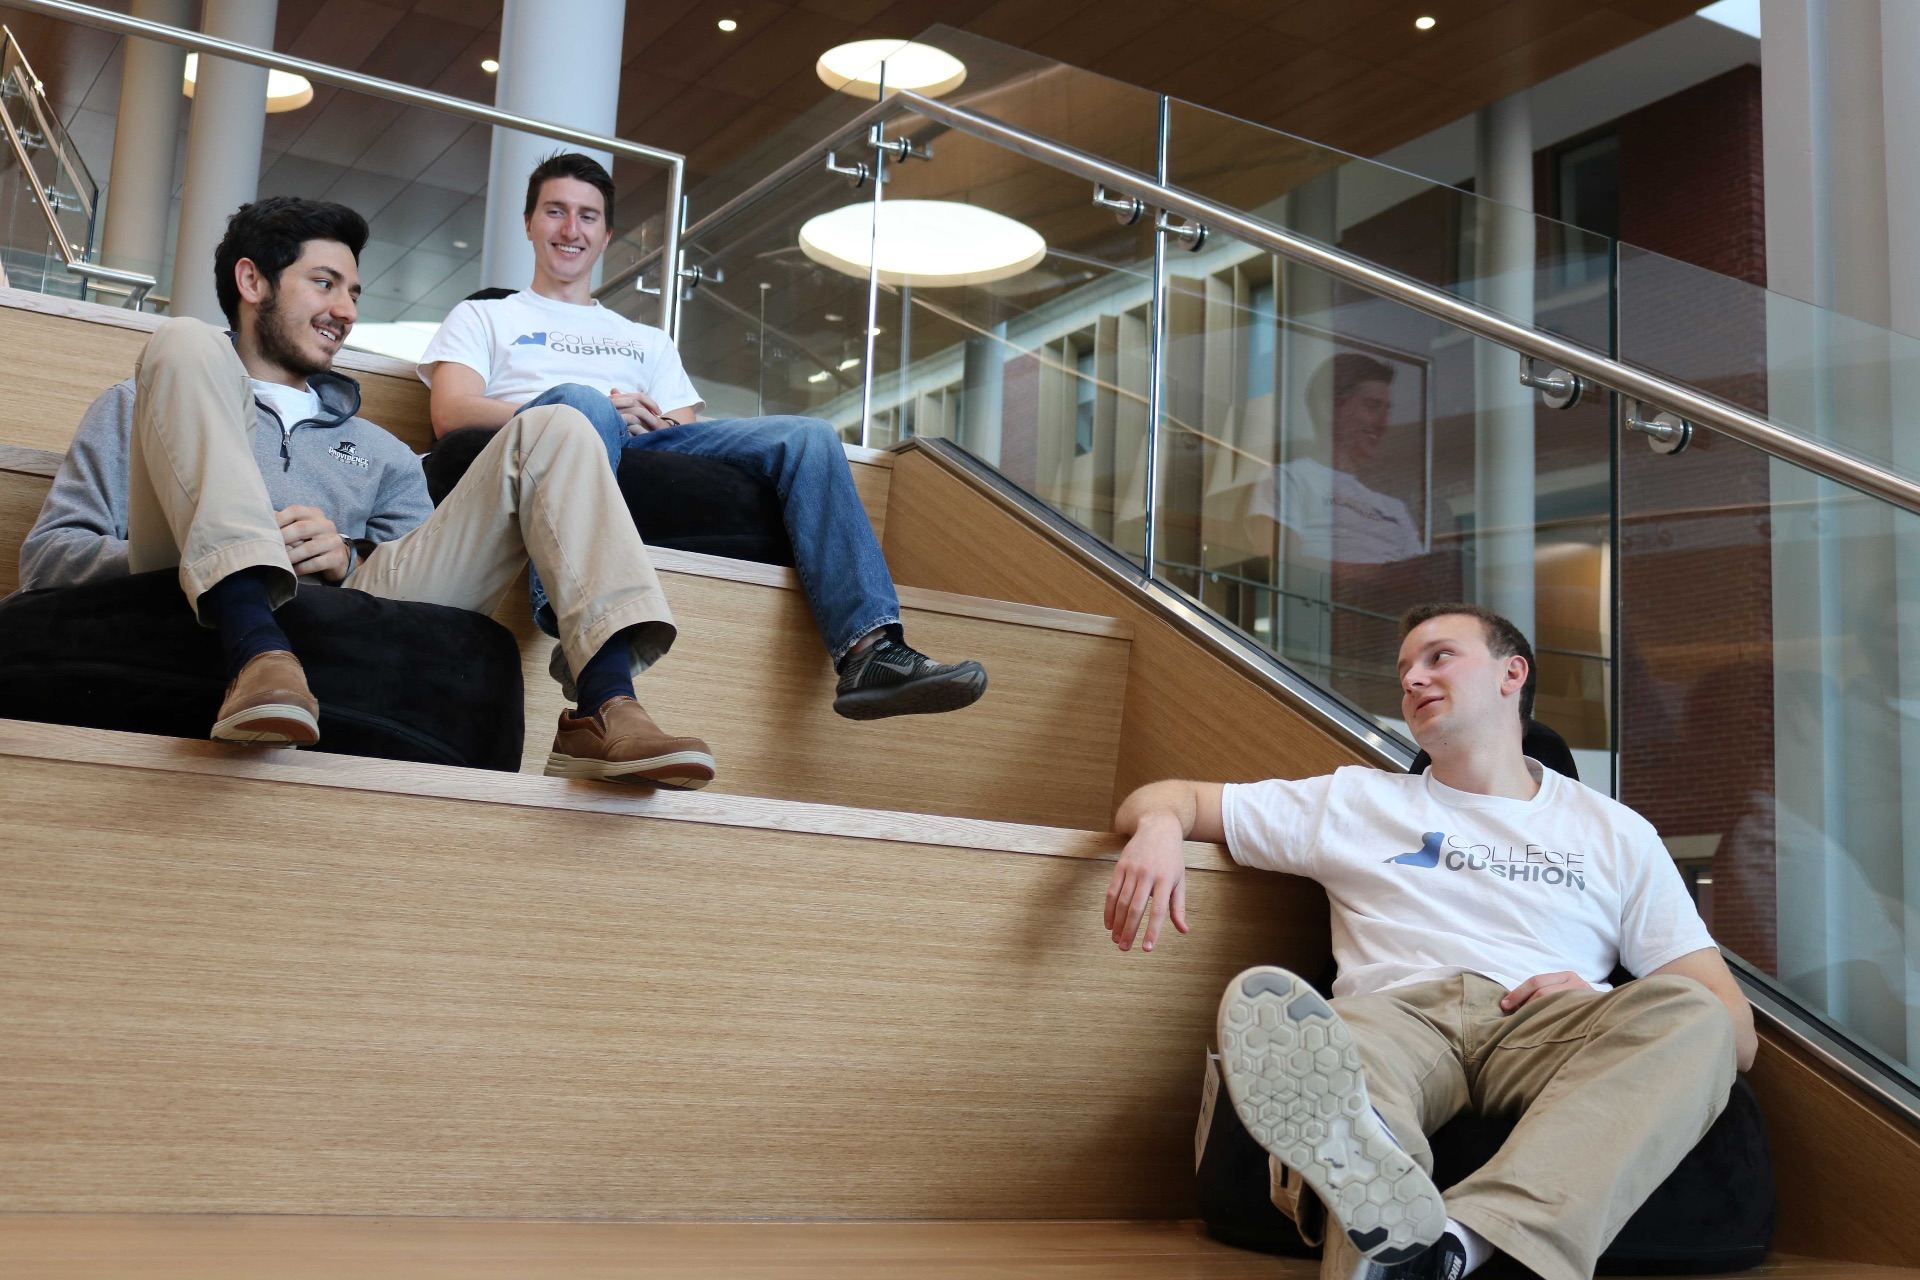 Michael Cruz '19, Shane Curran '19 and Andrew Drogan '19 sitting on the steps in the Ryan Center.